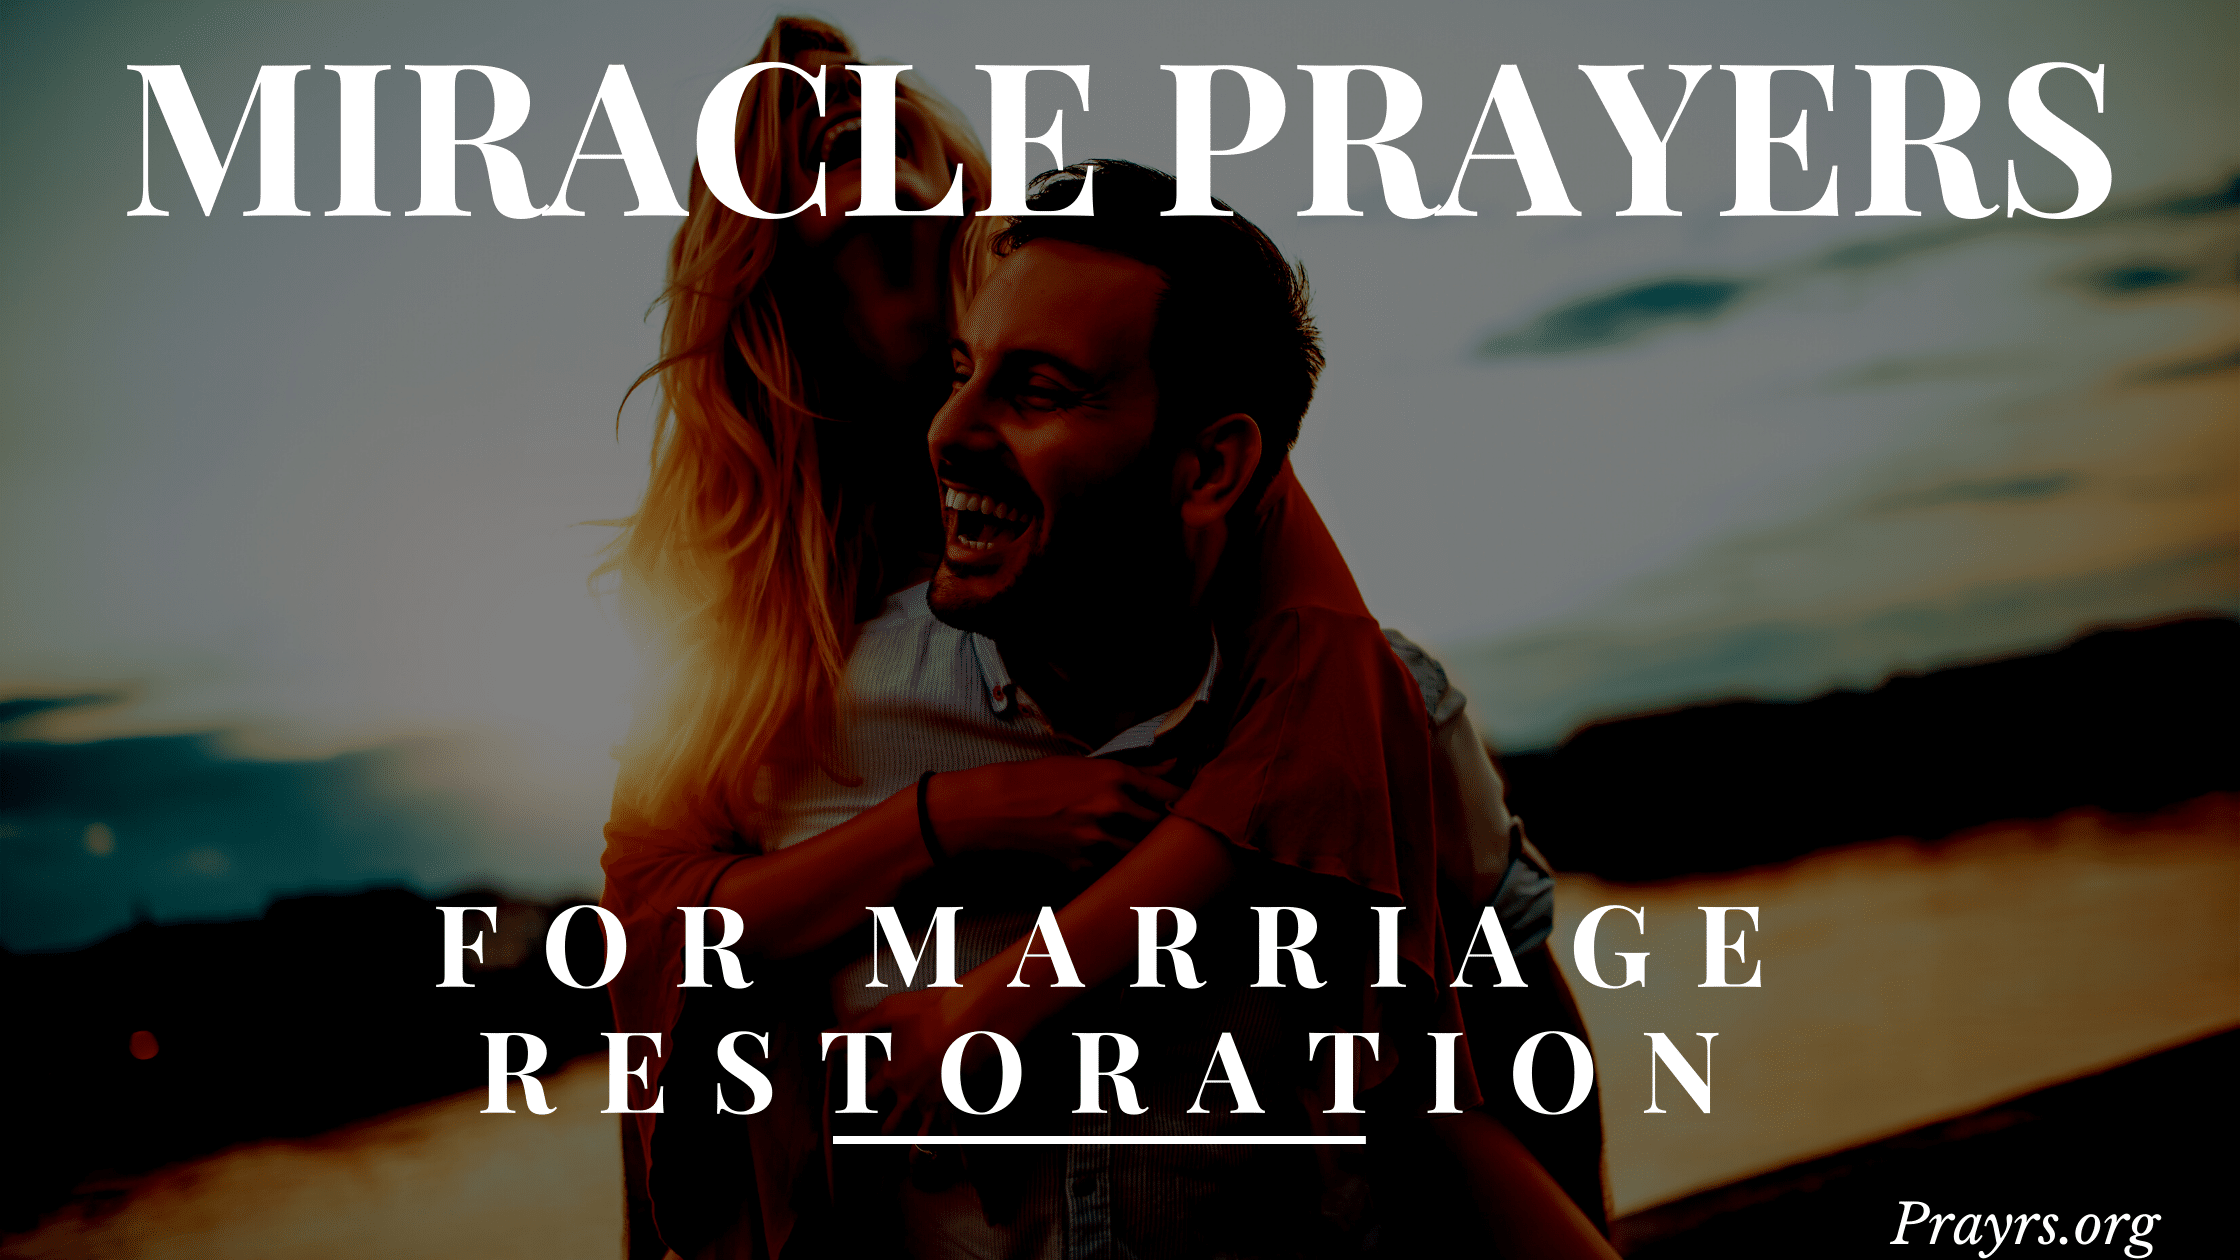 miracle prayers for marriage restoration